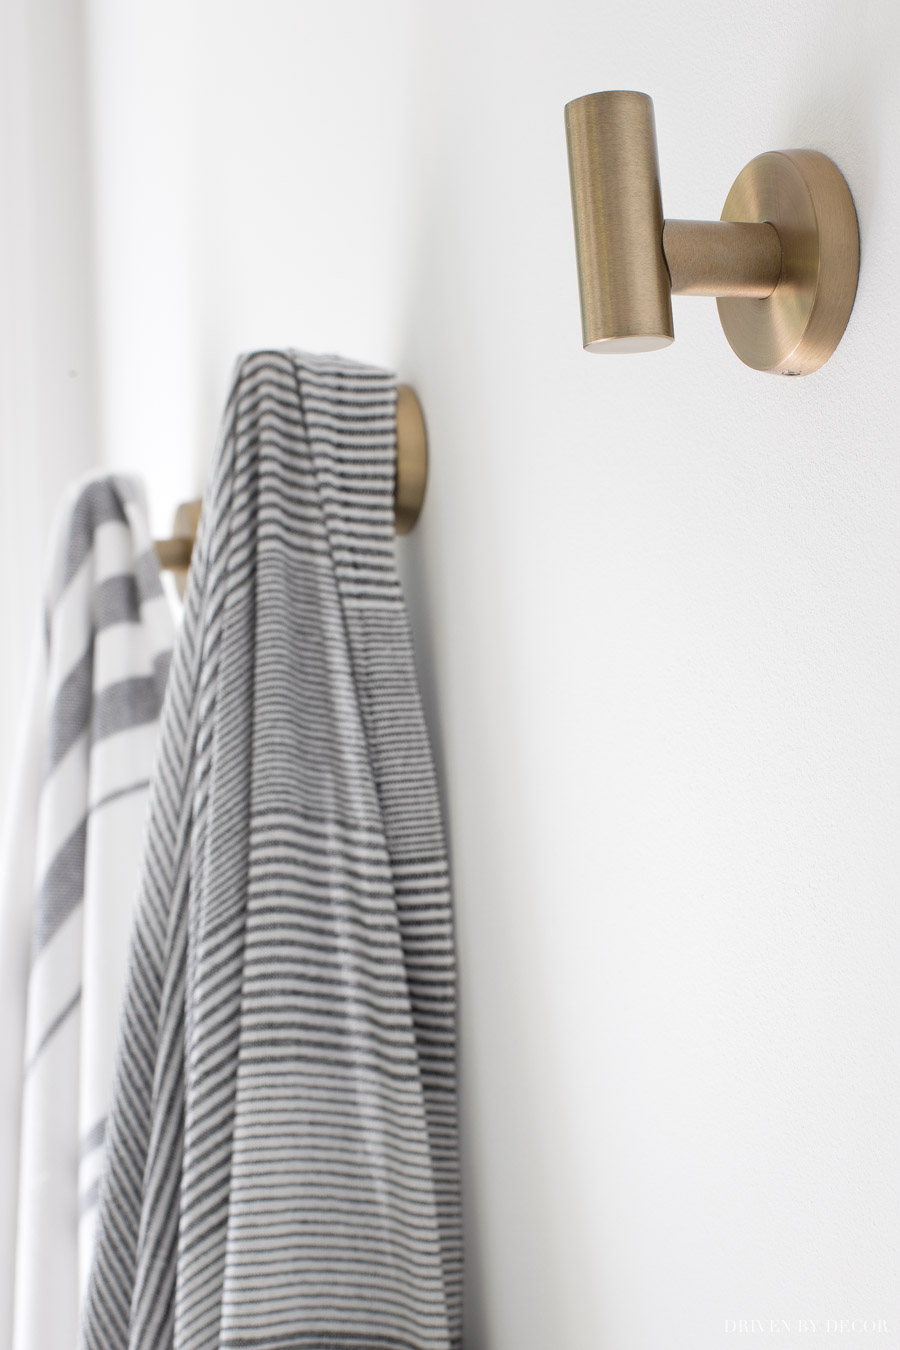 Such pretty brass towel hooks in this master bathroom!